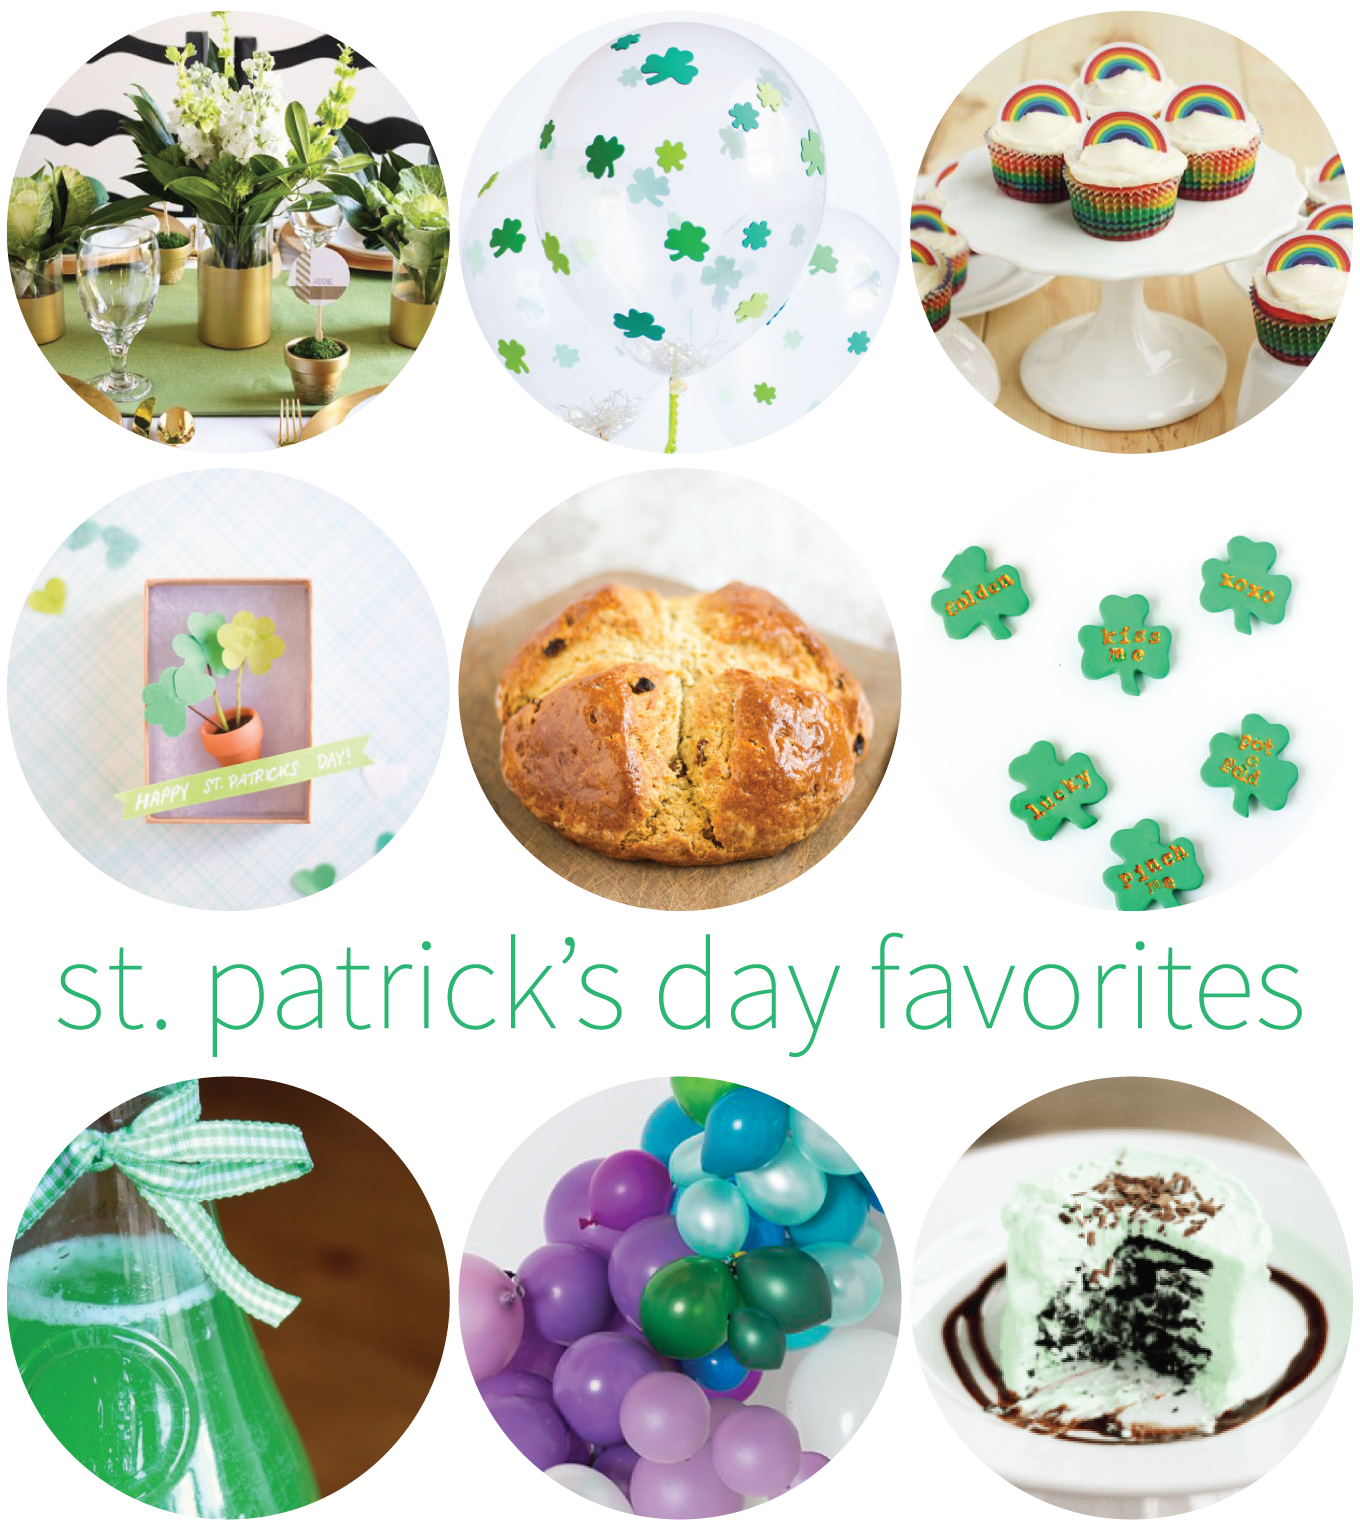 food, decor, and party ideas for St. Patrick's Day